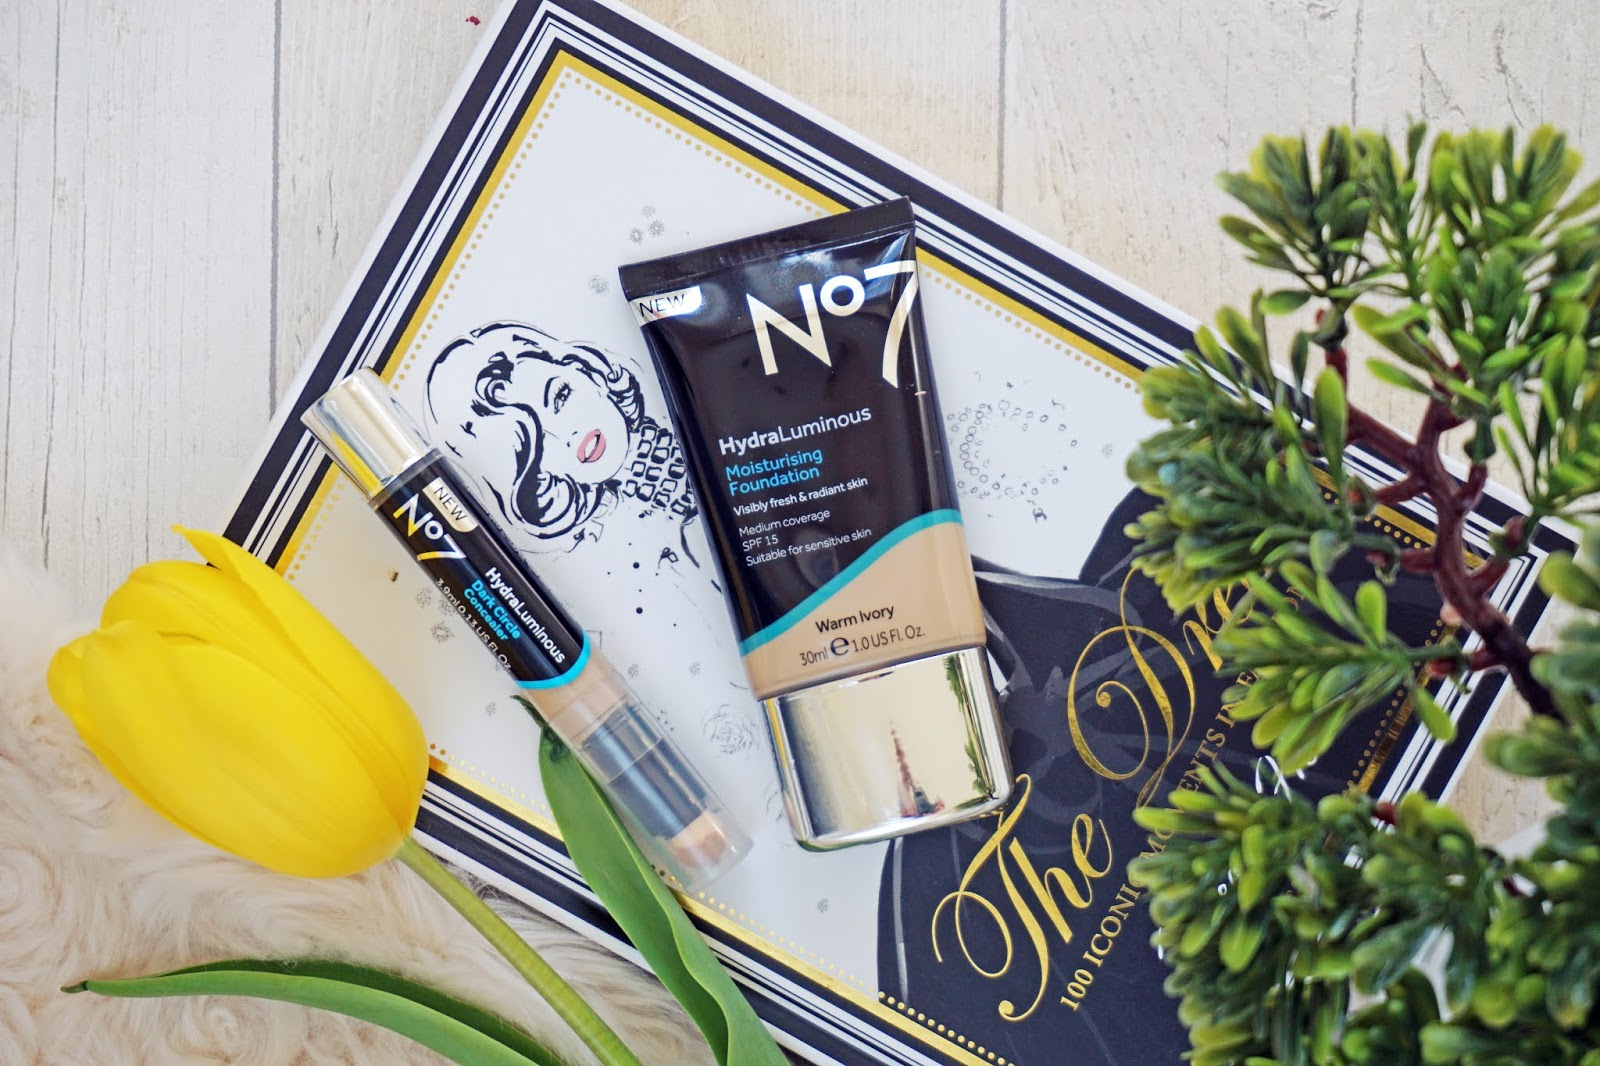 No7 HydraLuminous Foundation and Concealer